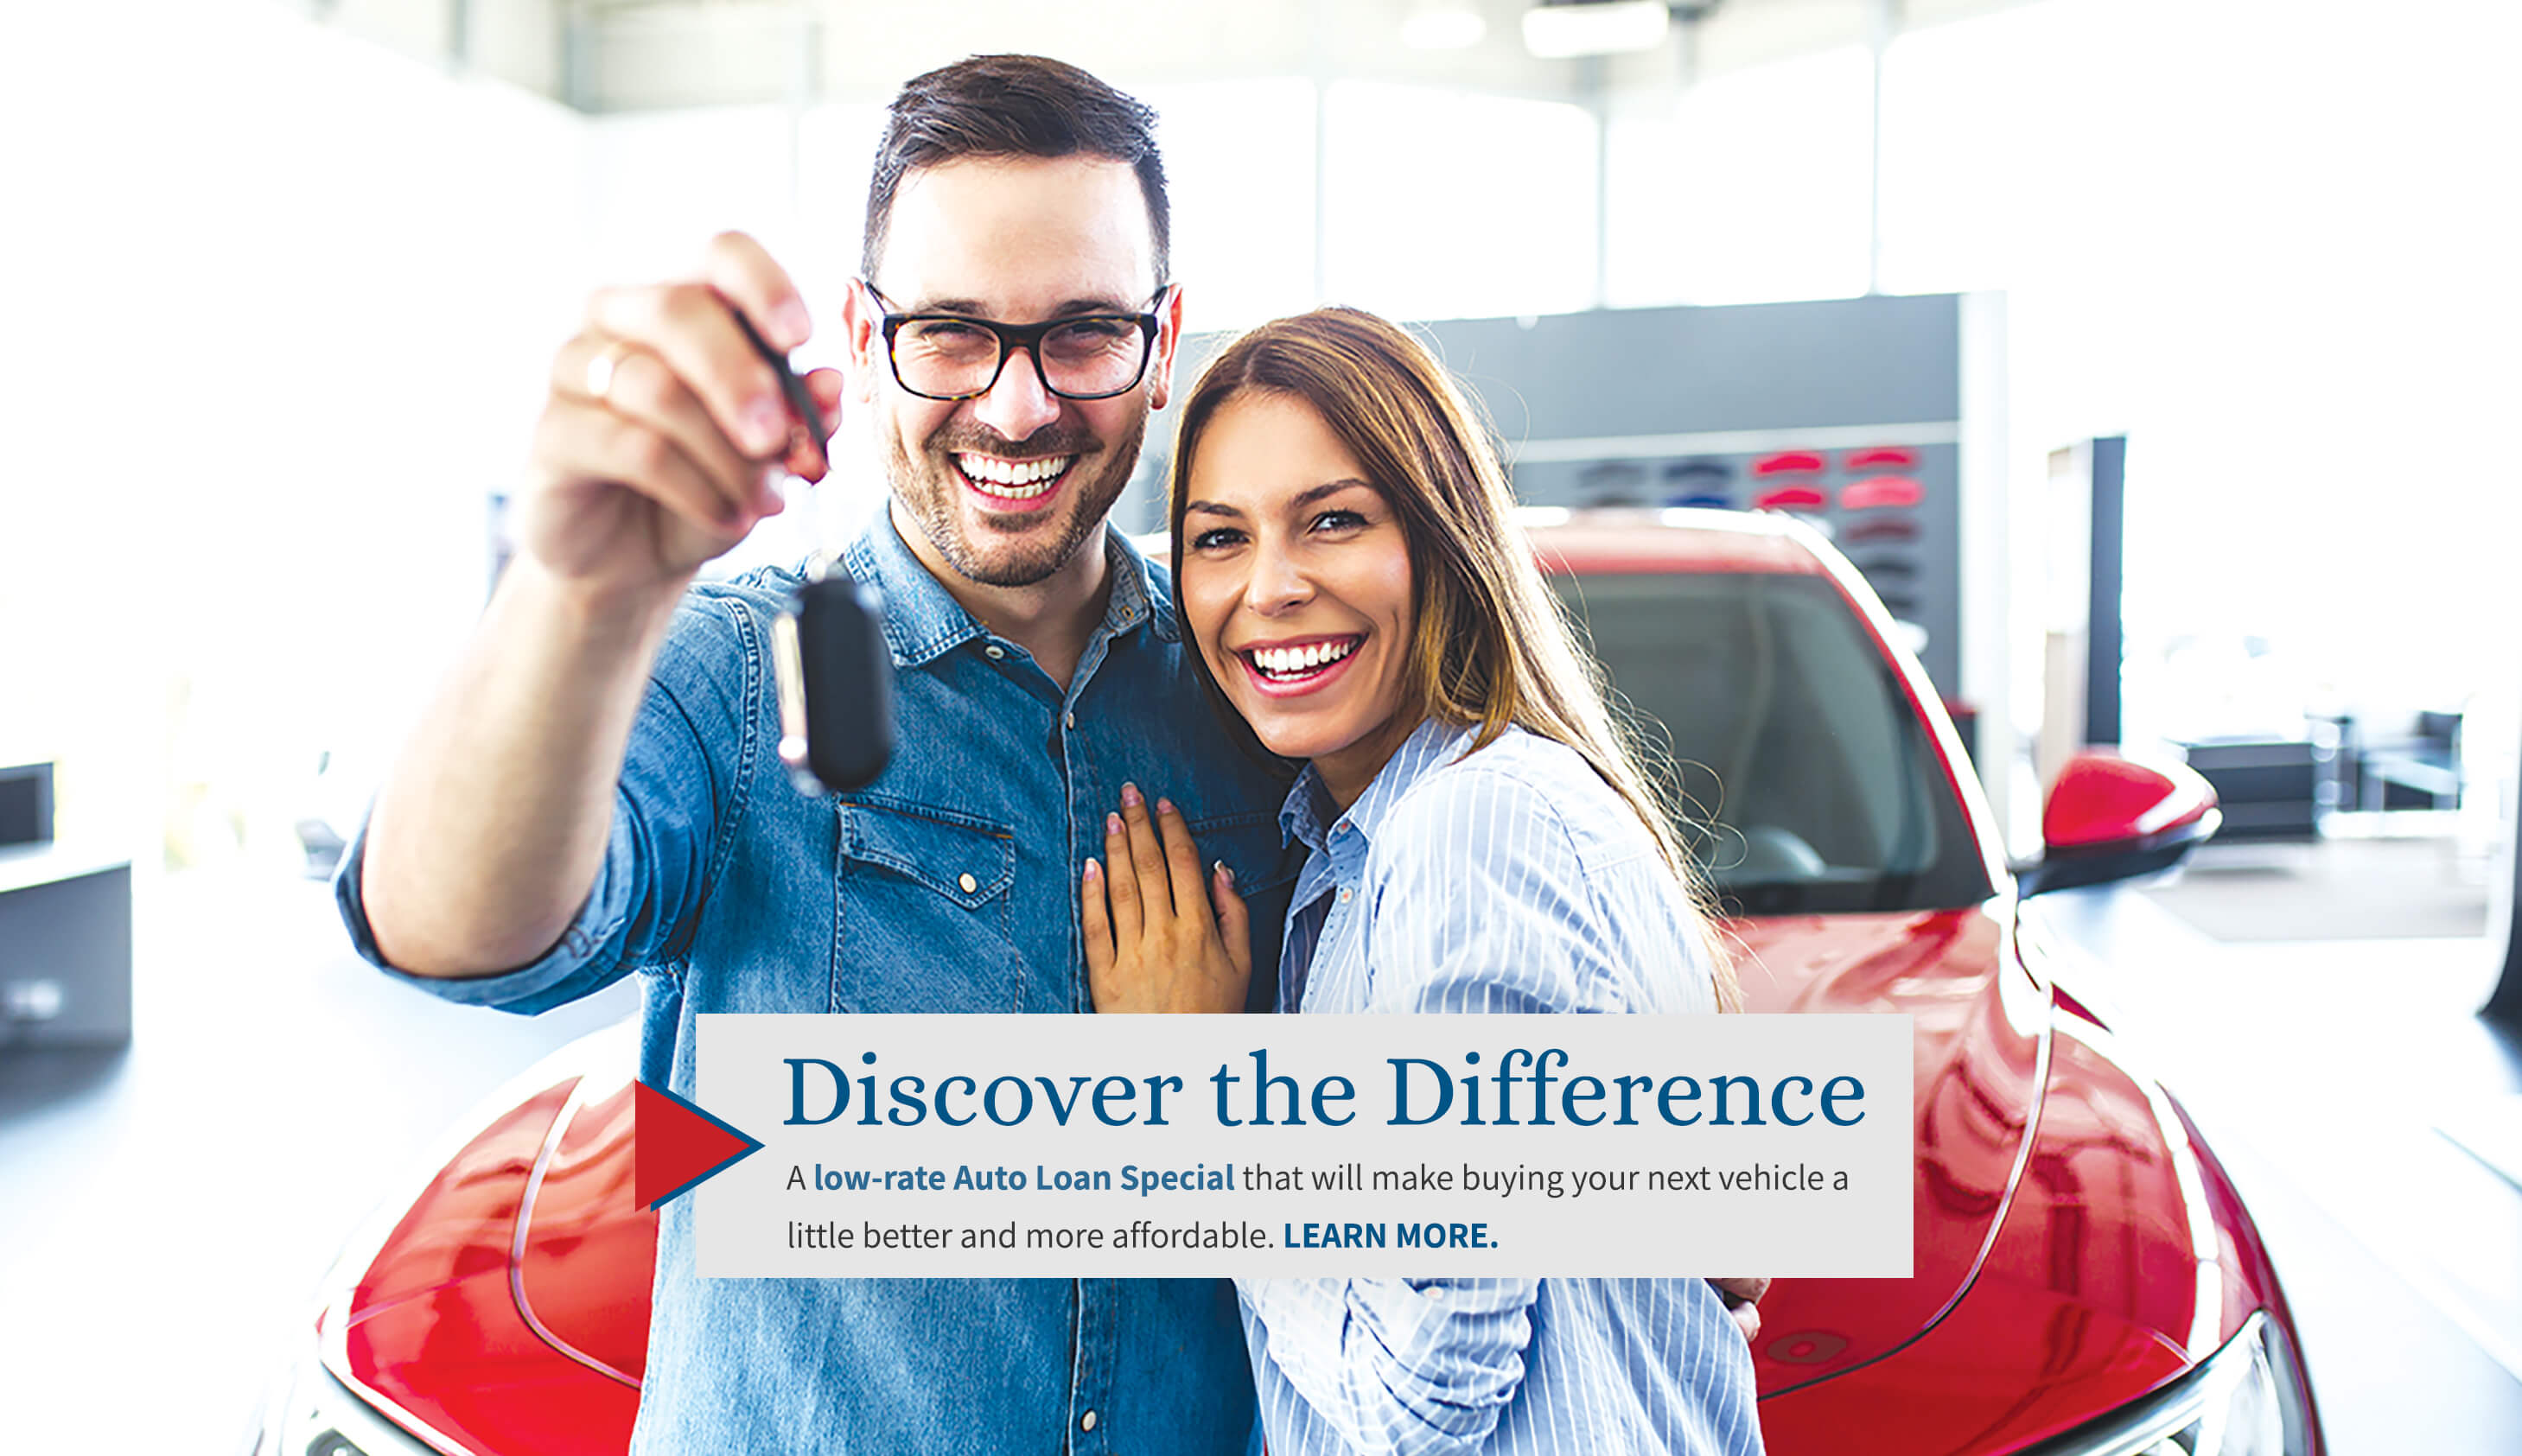 Discover the Difference. A low-rate Auto Loan Special that will make buying your next vehicle a little better and more affordable. Learn More.